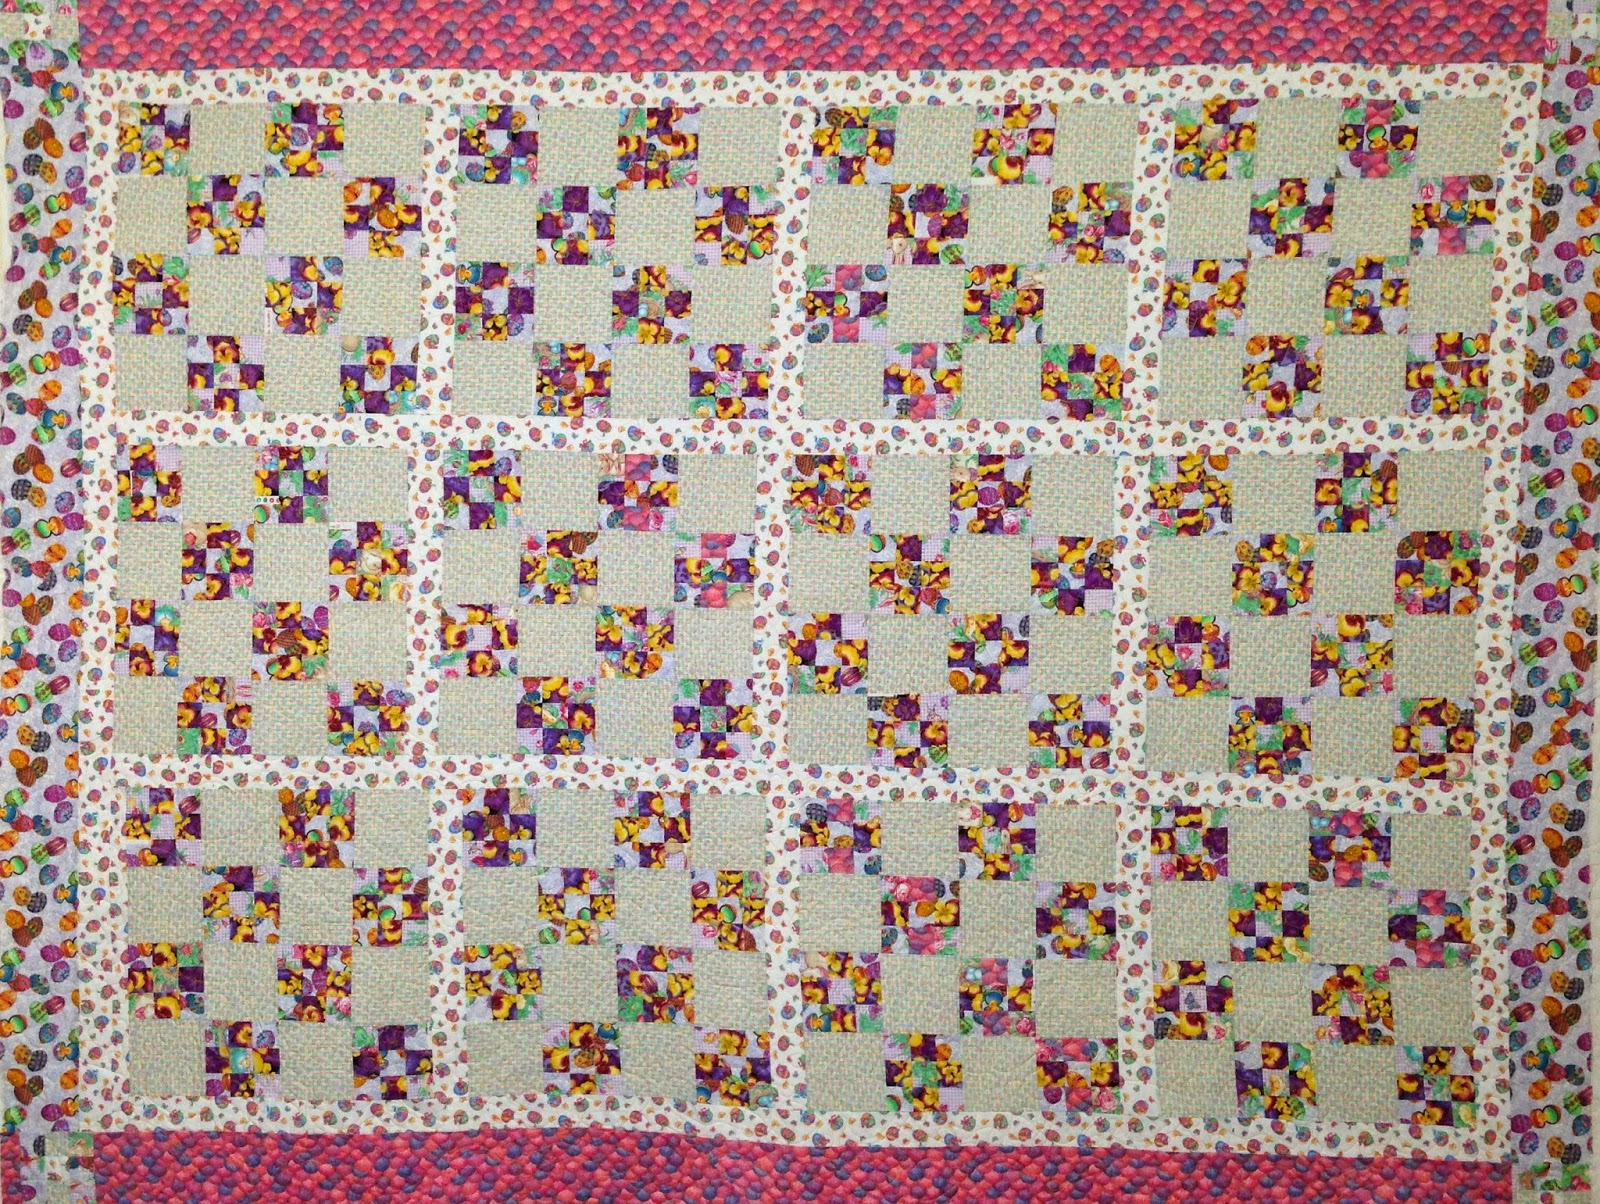 Erin Todd 9-patch Quilt